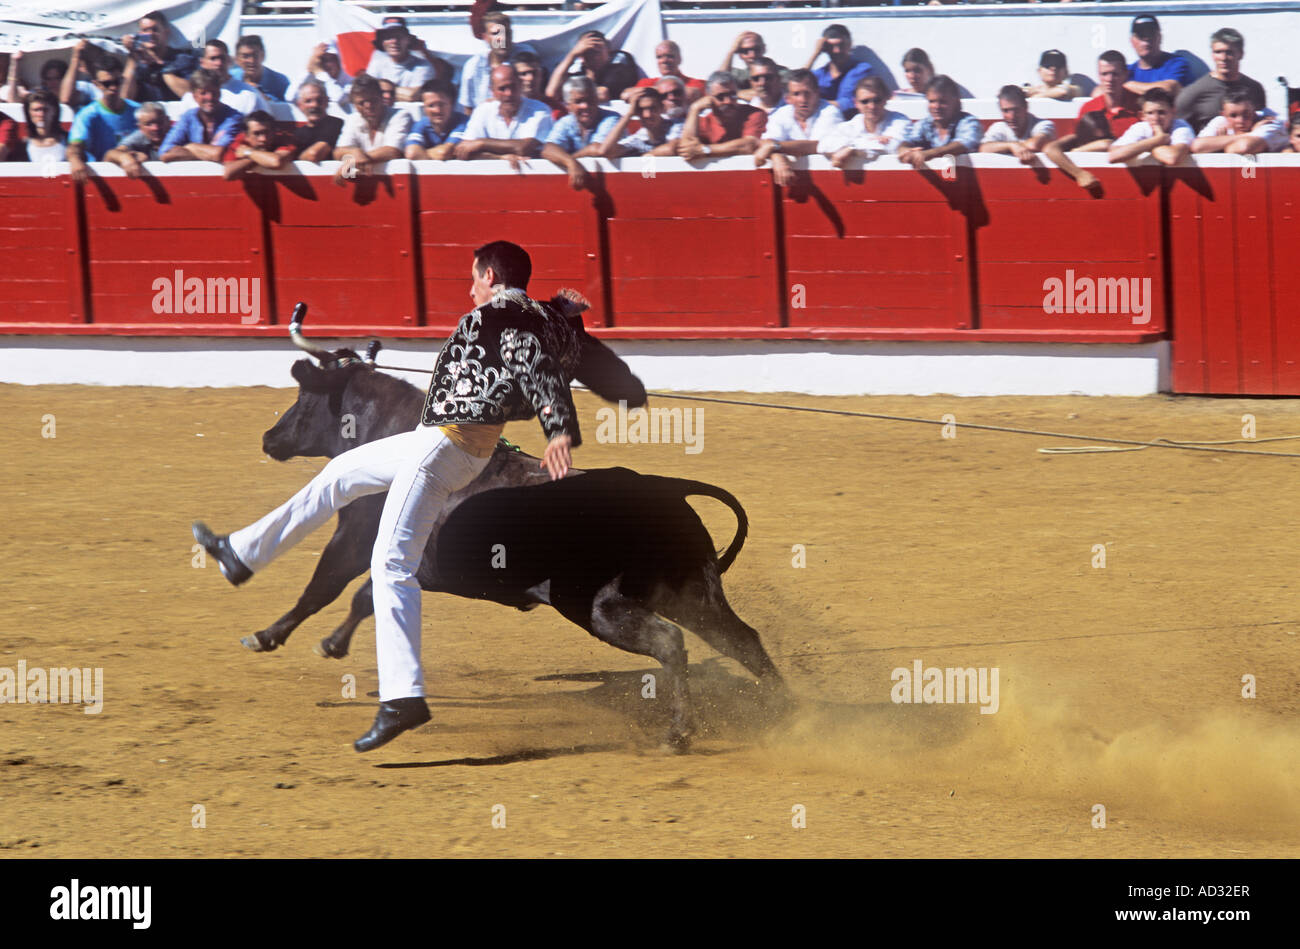 Course Landaise, a form of bloodless bullfighting where young men in boleros face frisky cows Stock Photo